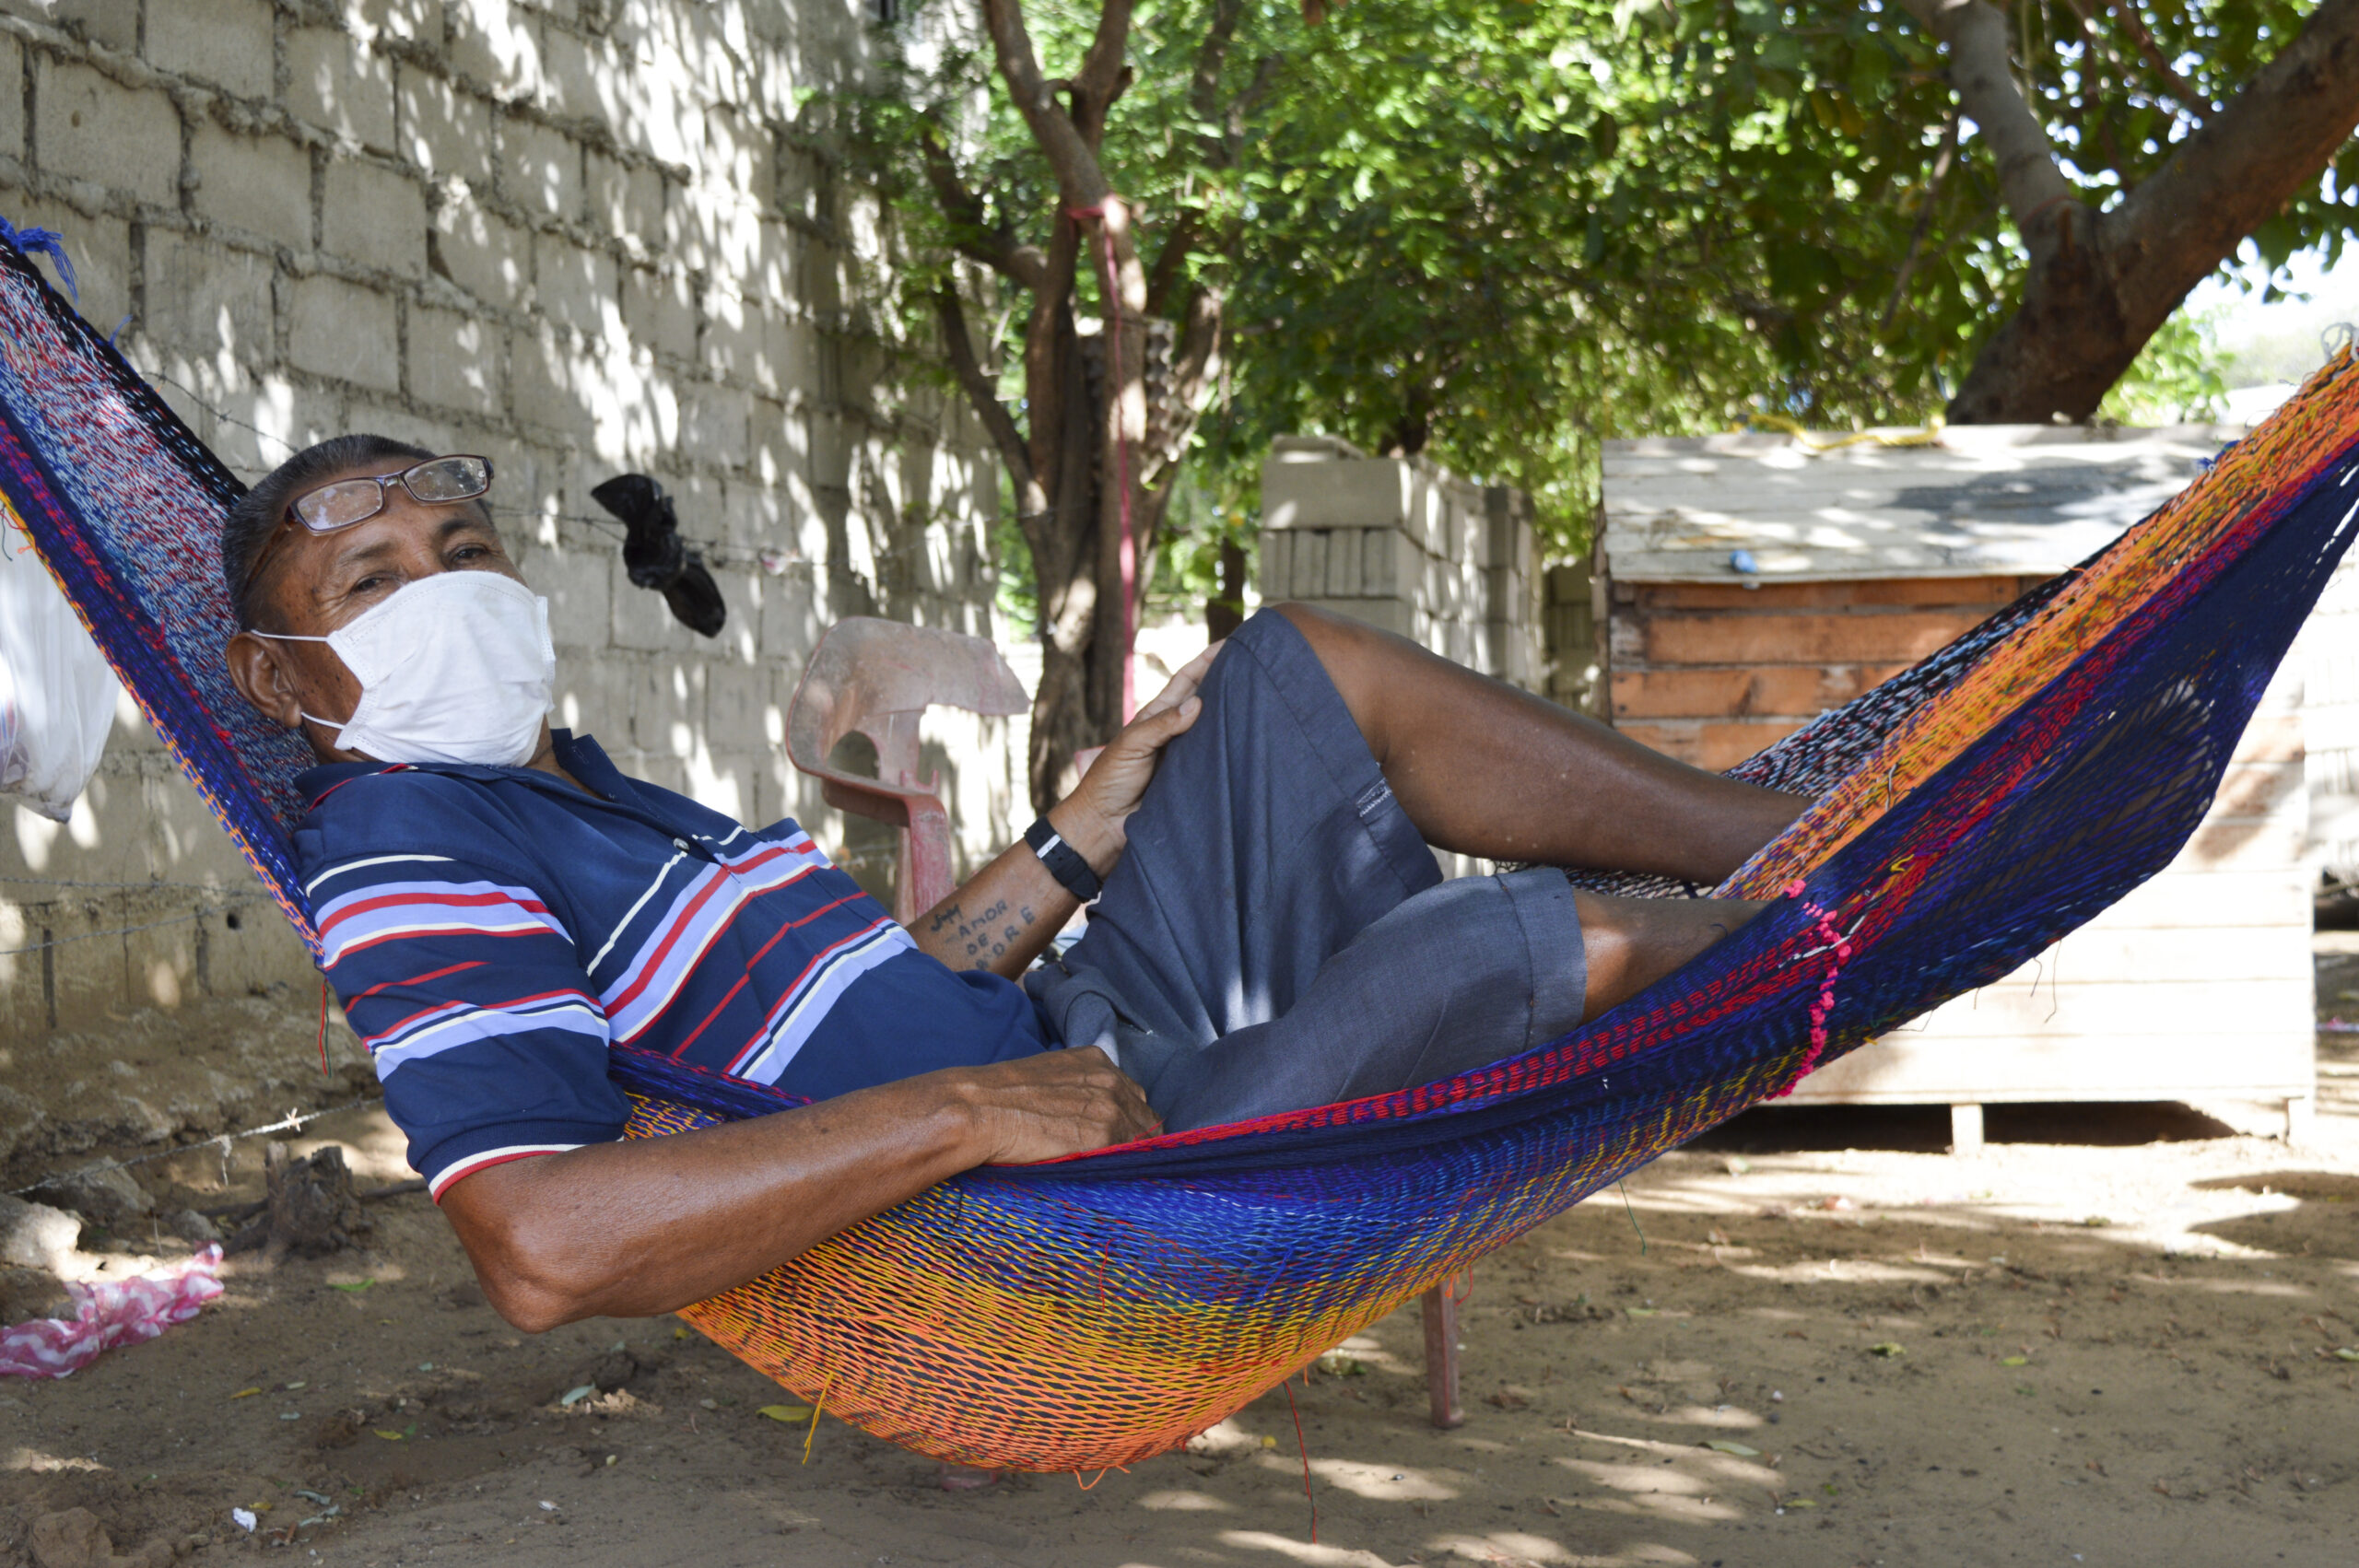 Joaquin lays in a hammock as he wears a white mask.